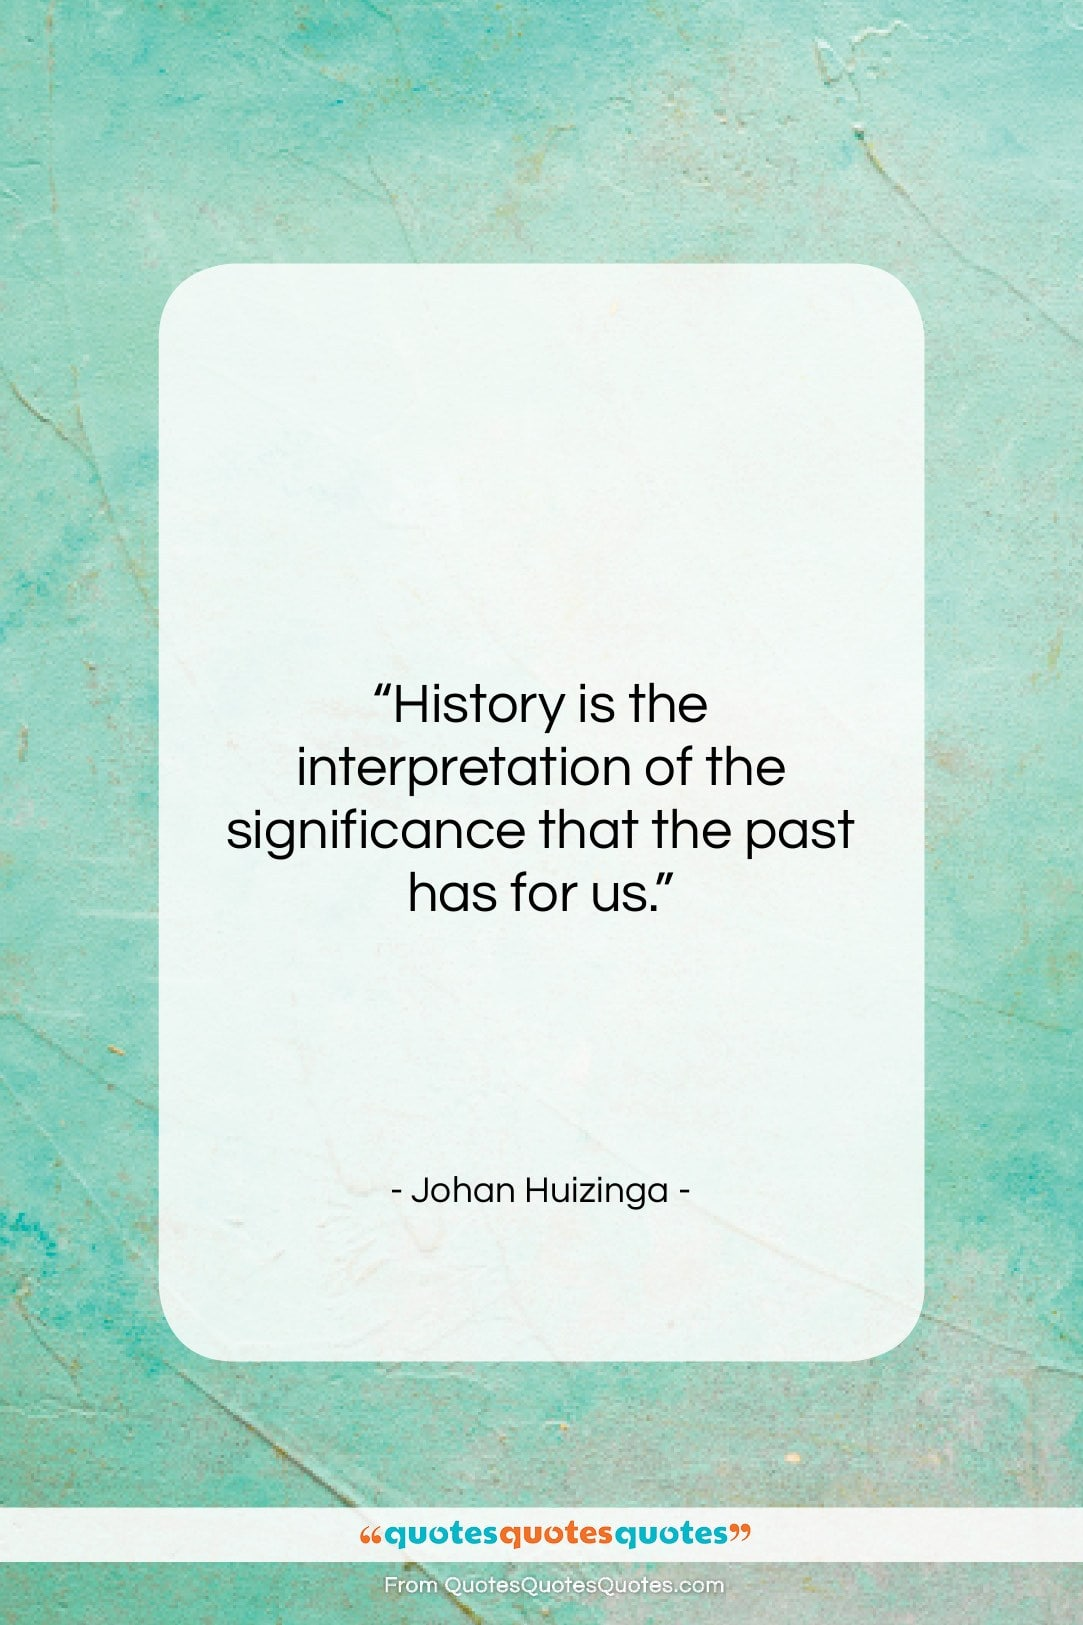 """Johan Huizinga quote: """"History is the interpretation of the significance…""""- at QuotesQuotesQuotes.com"""